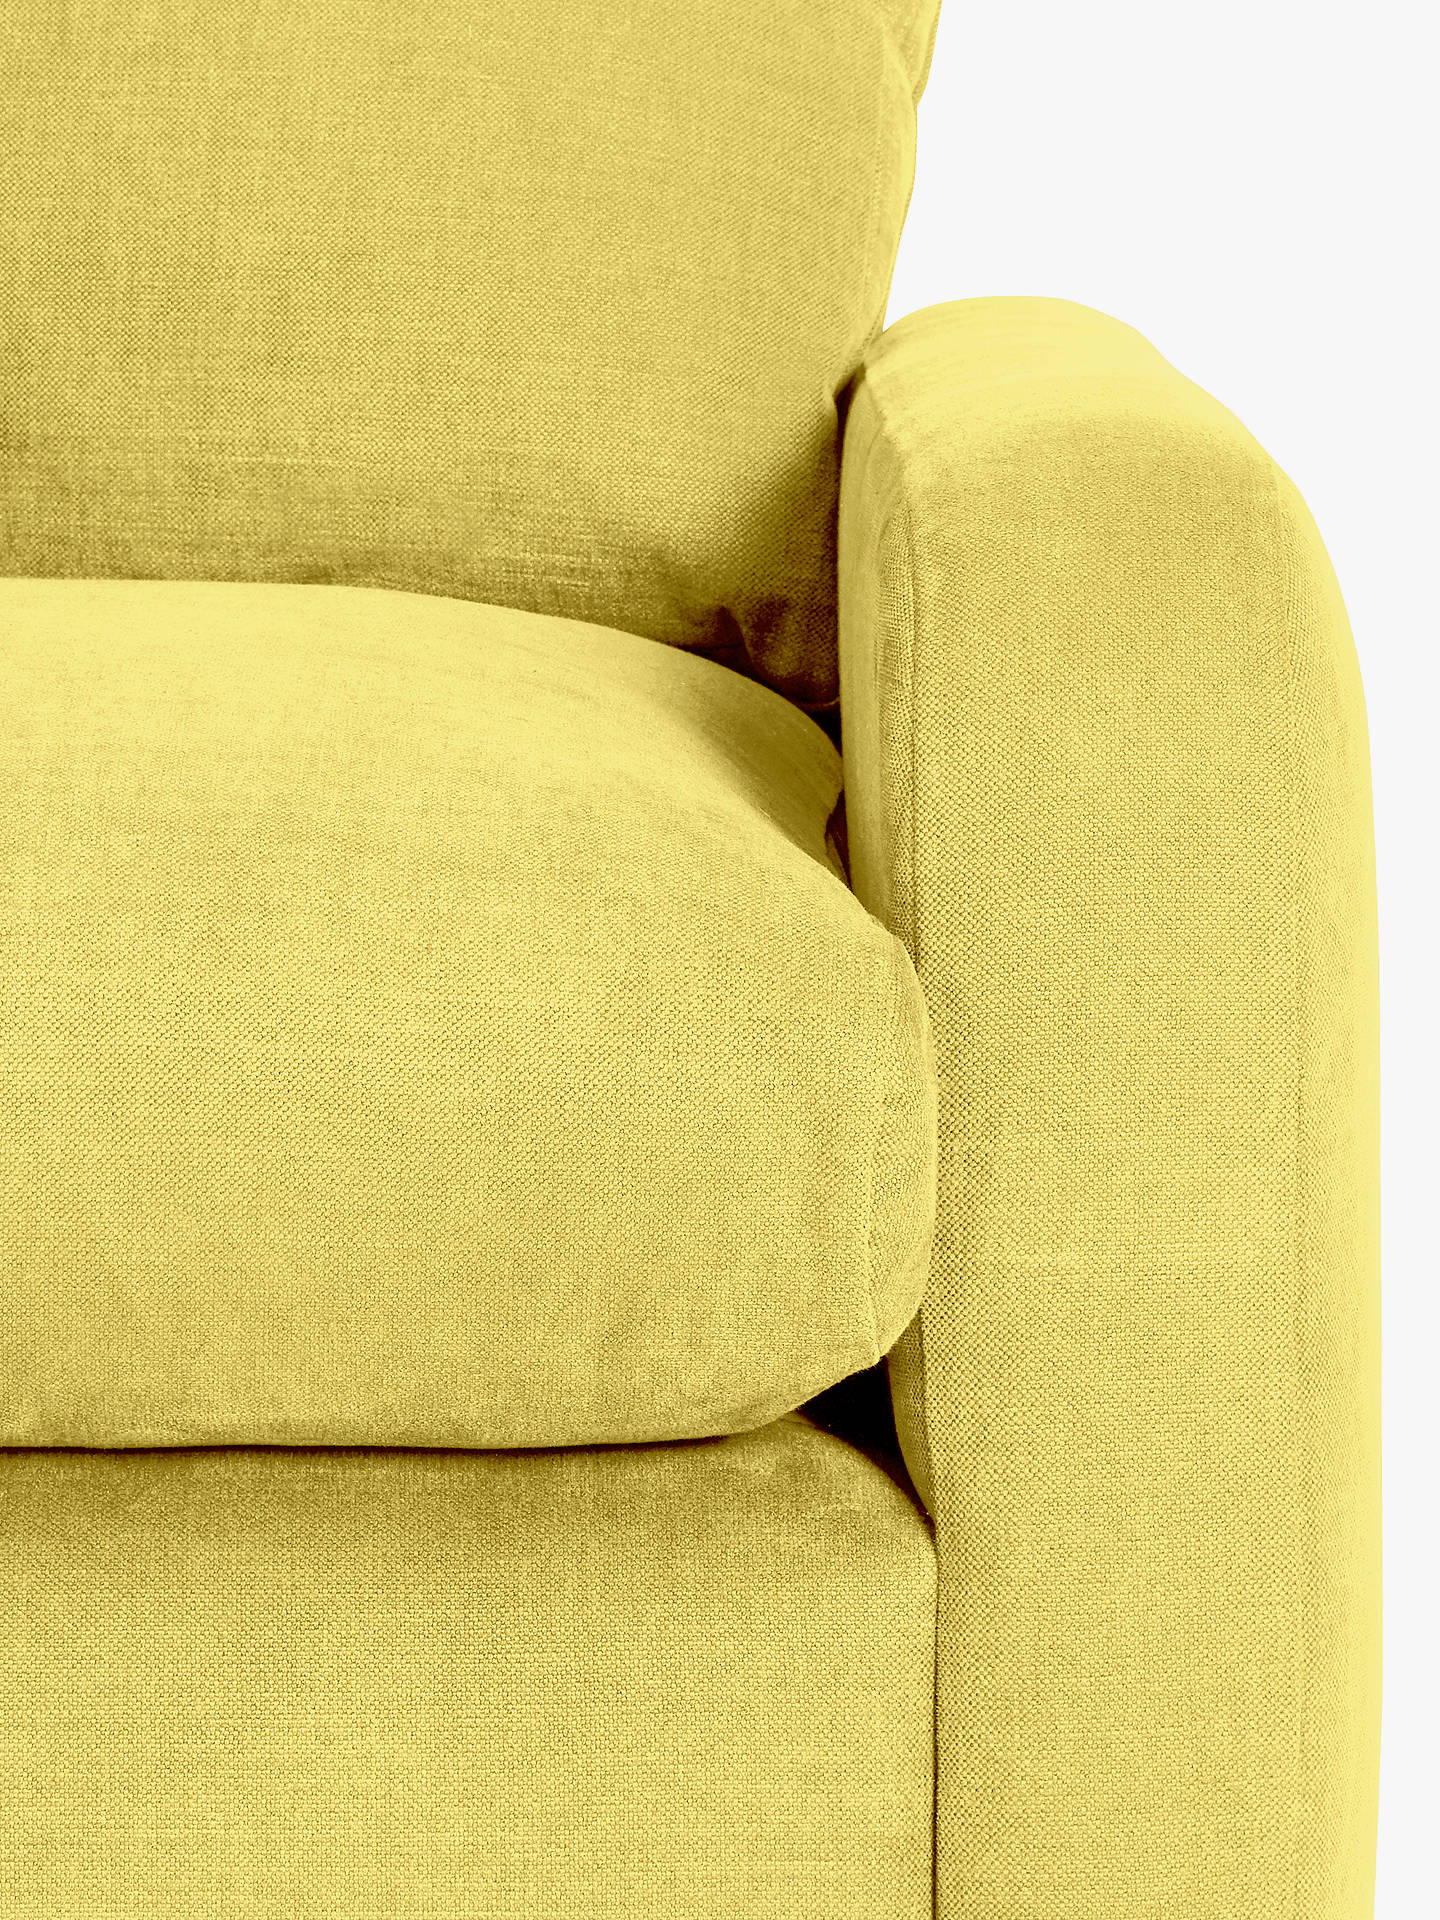 Buy Floppy Jo Large Corner Sofa by Loaf at John Lewis, Brushed Cotton Maize Yellow Online at johnlewis.com